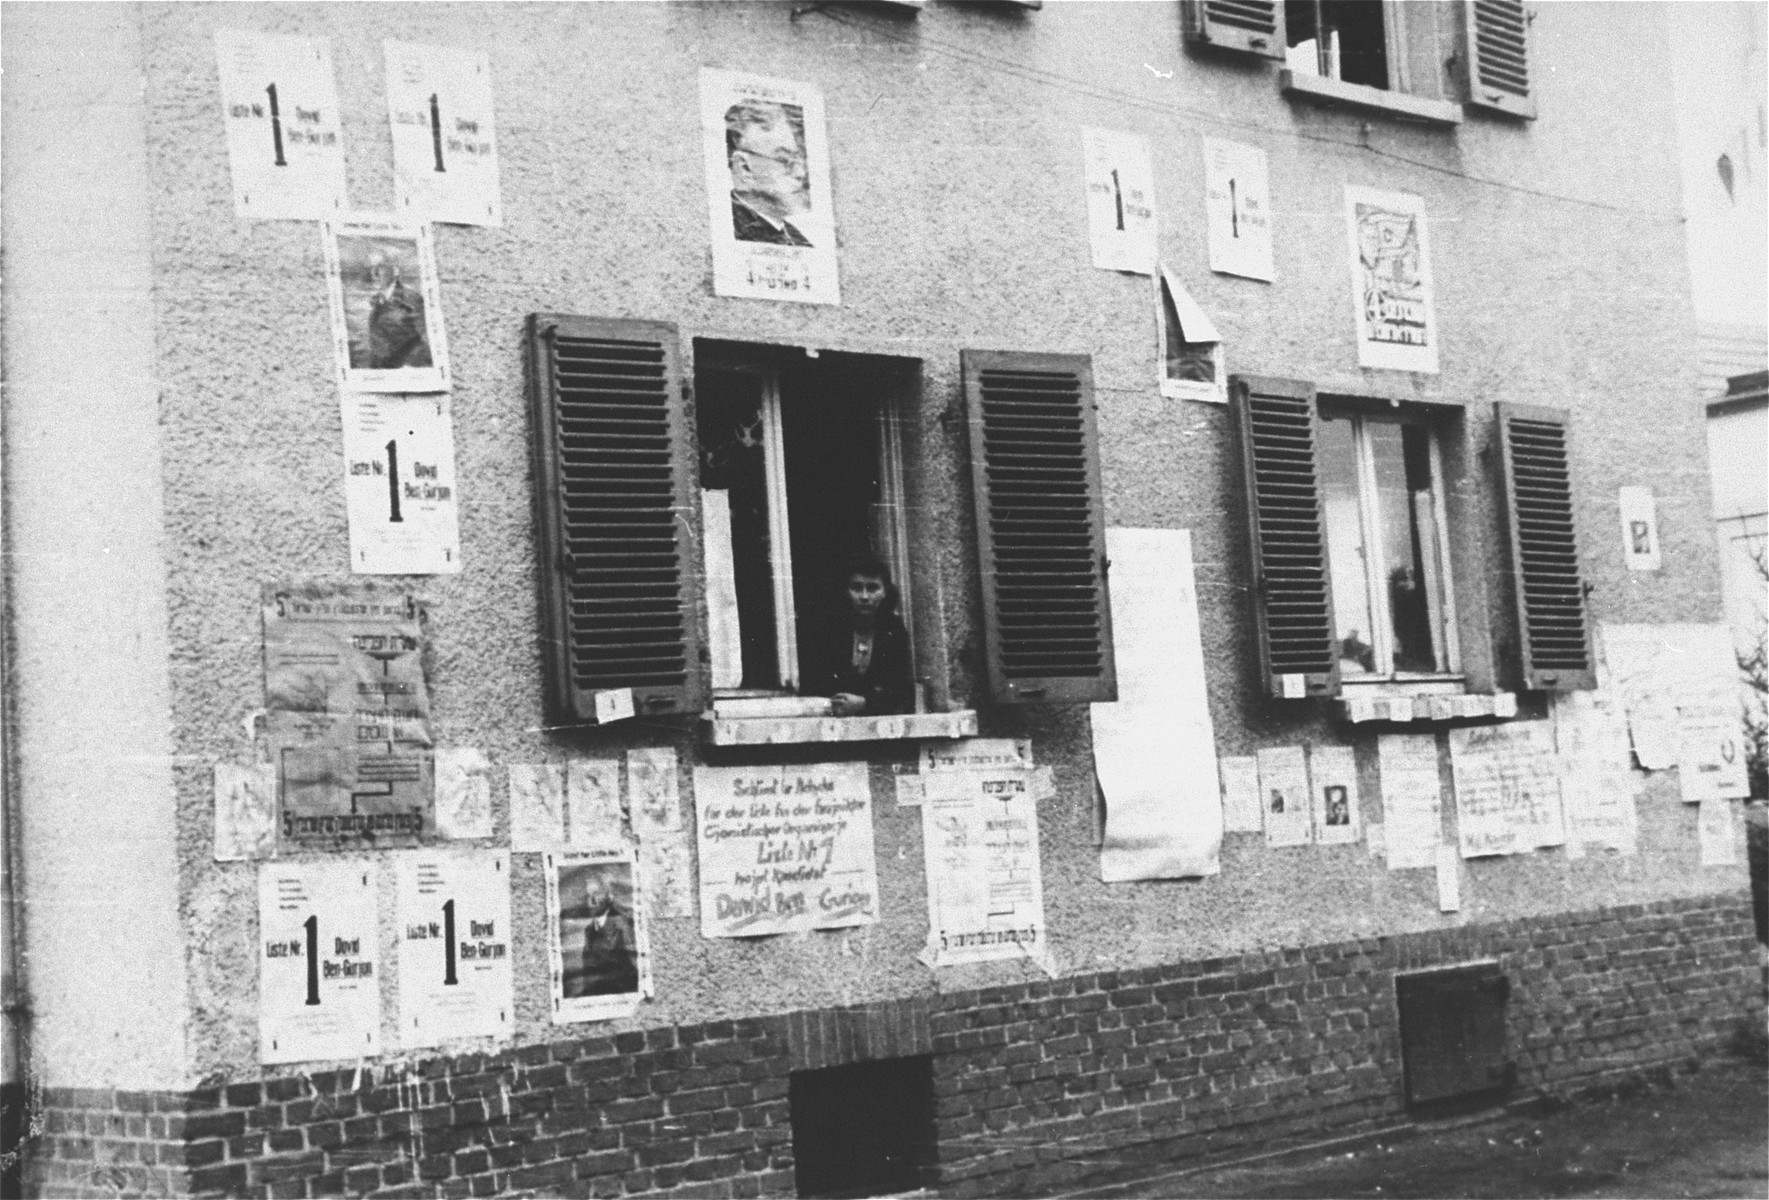 Election campaign posters are plastered on the walls of buildings in the Zeilsheim displaced persons' camp.